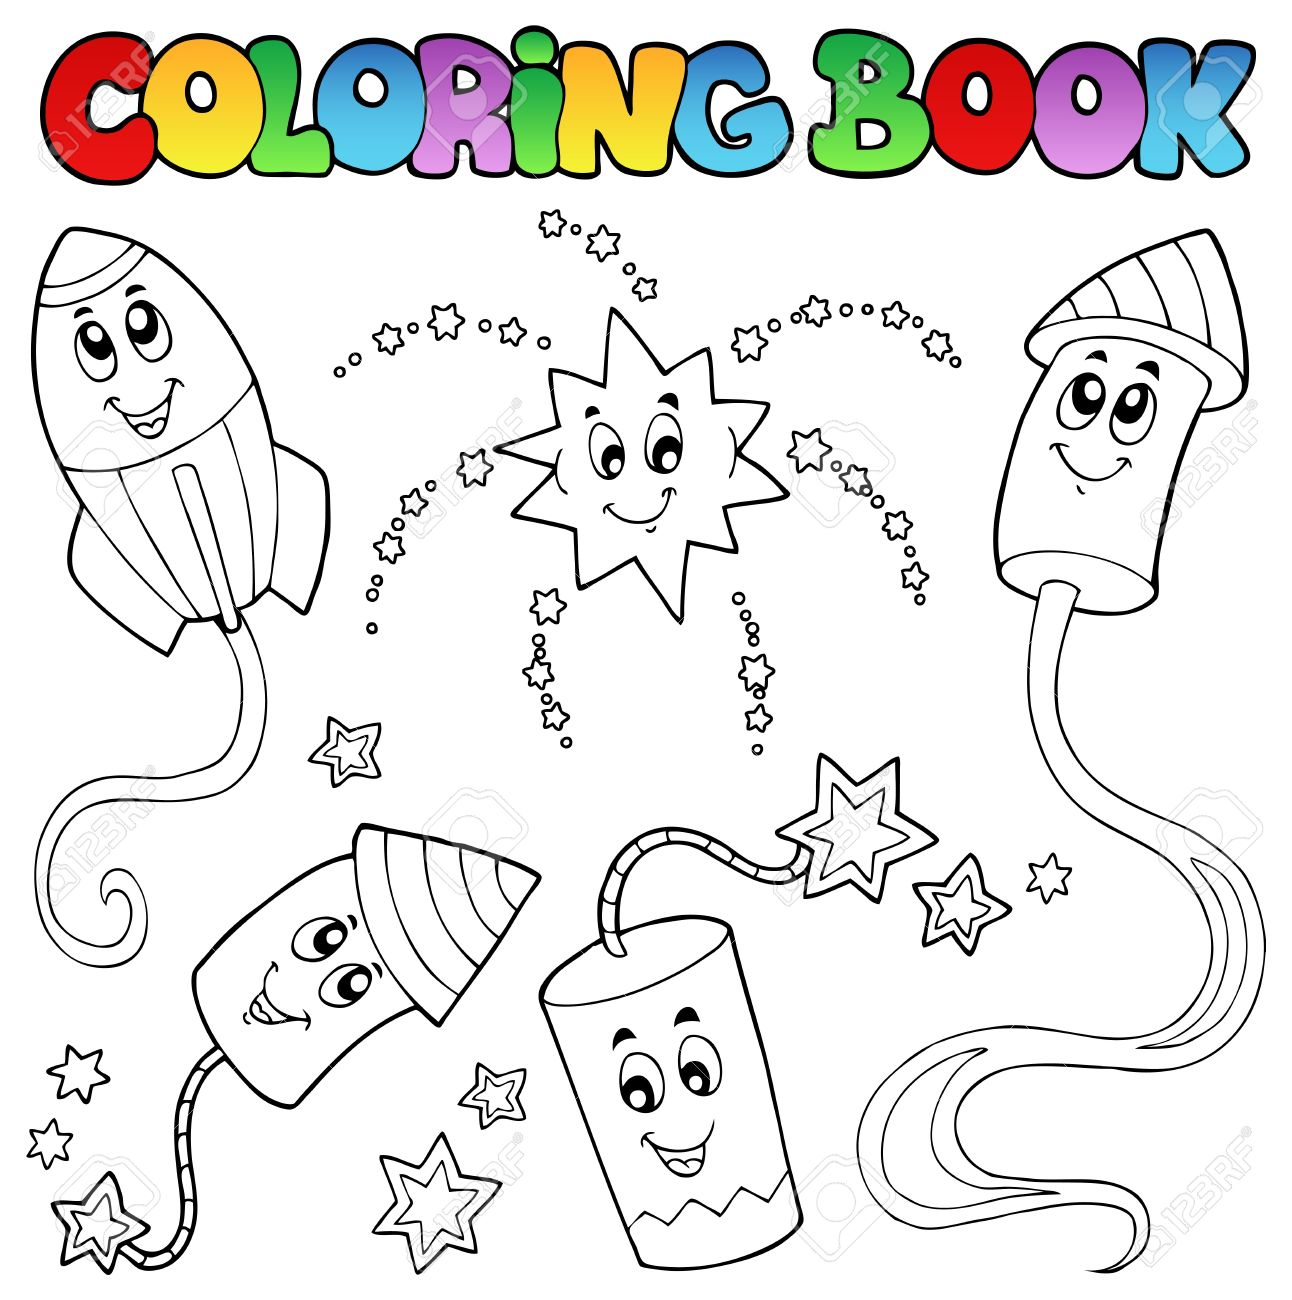 coloring book fireworks theme 2 vector illustration royalty